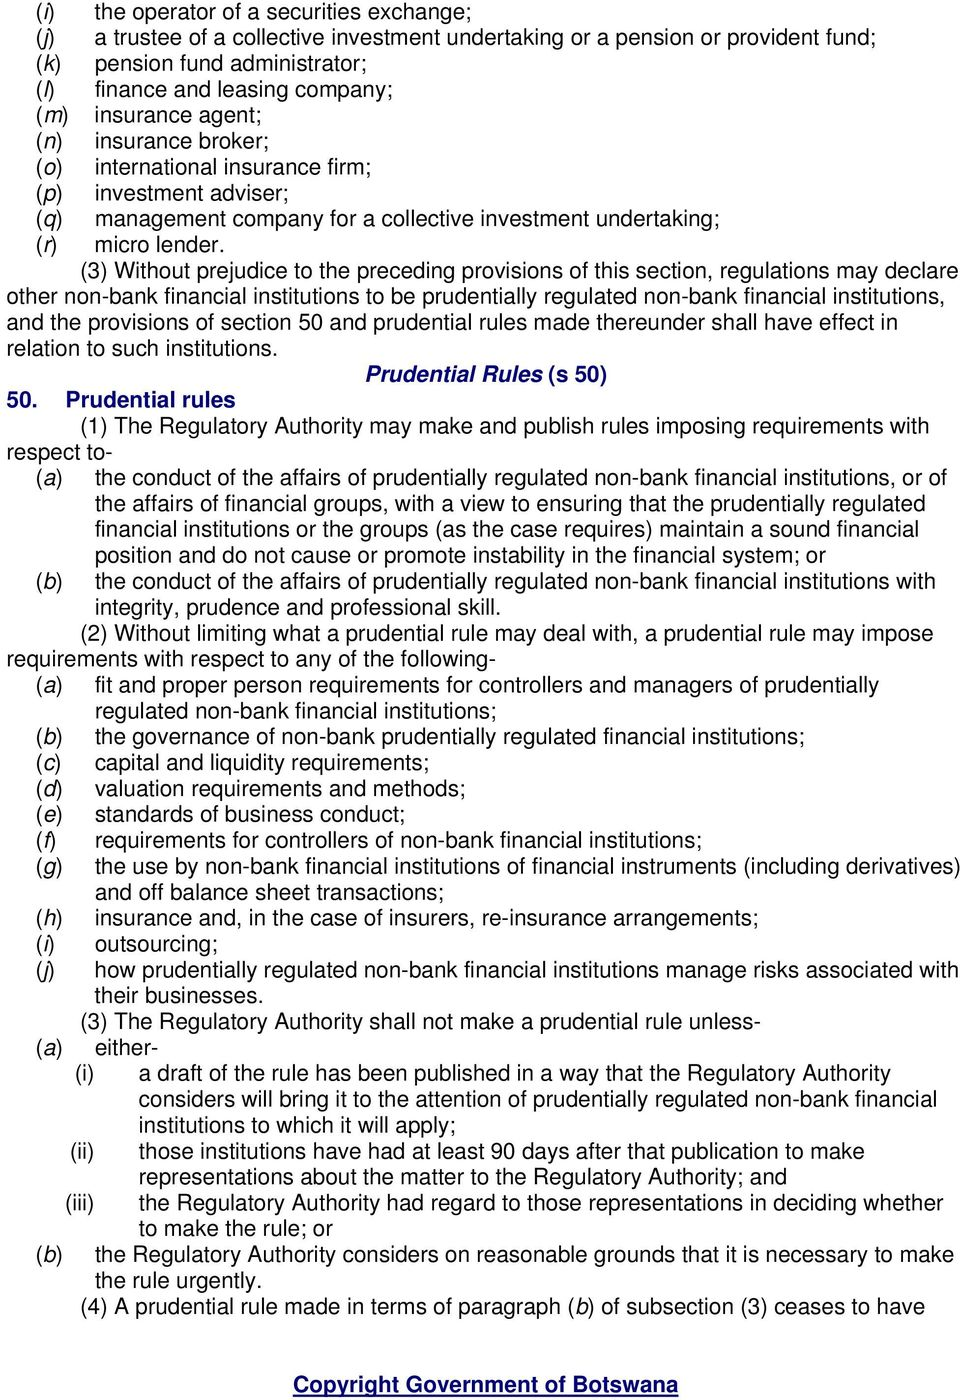 (3) Without prejudice to the preceding provisions of this section, regulations may declare other non-bank financial institutions to be prudentially regulated non-bank financial institutions, and the